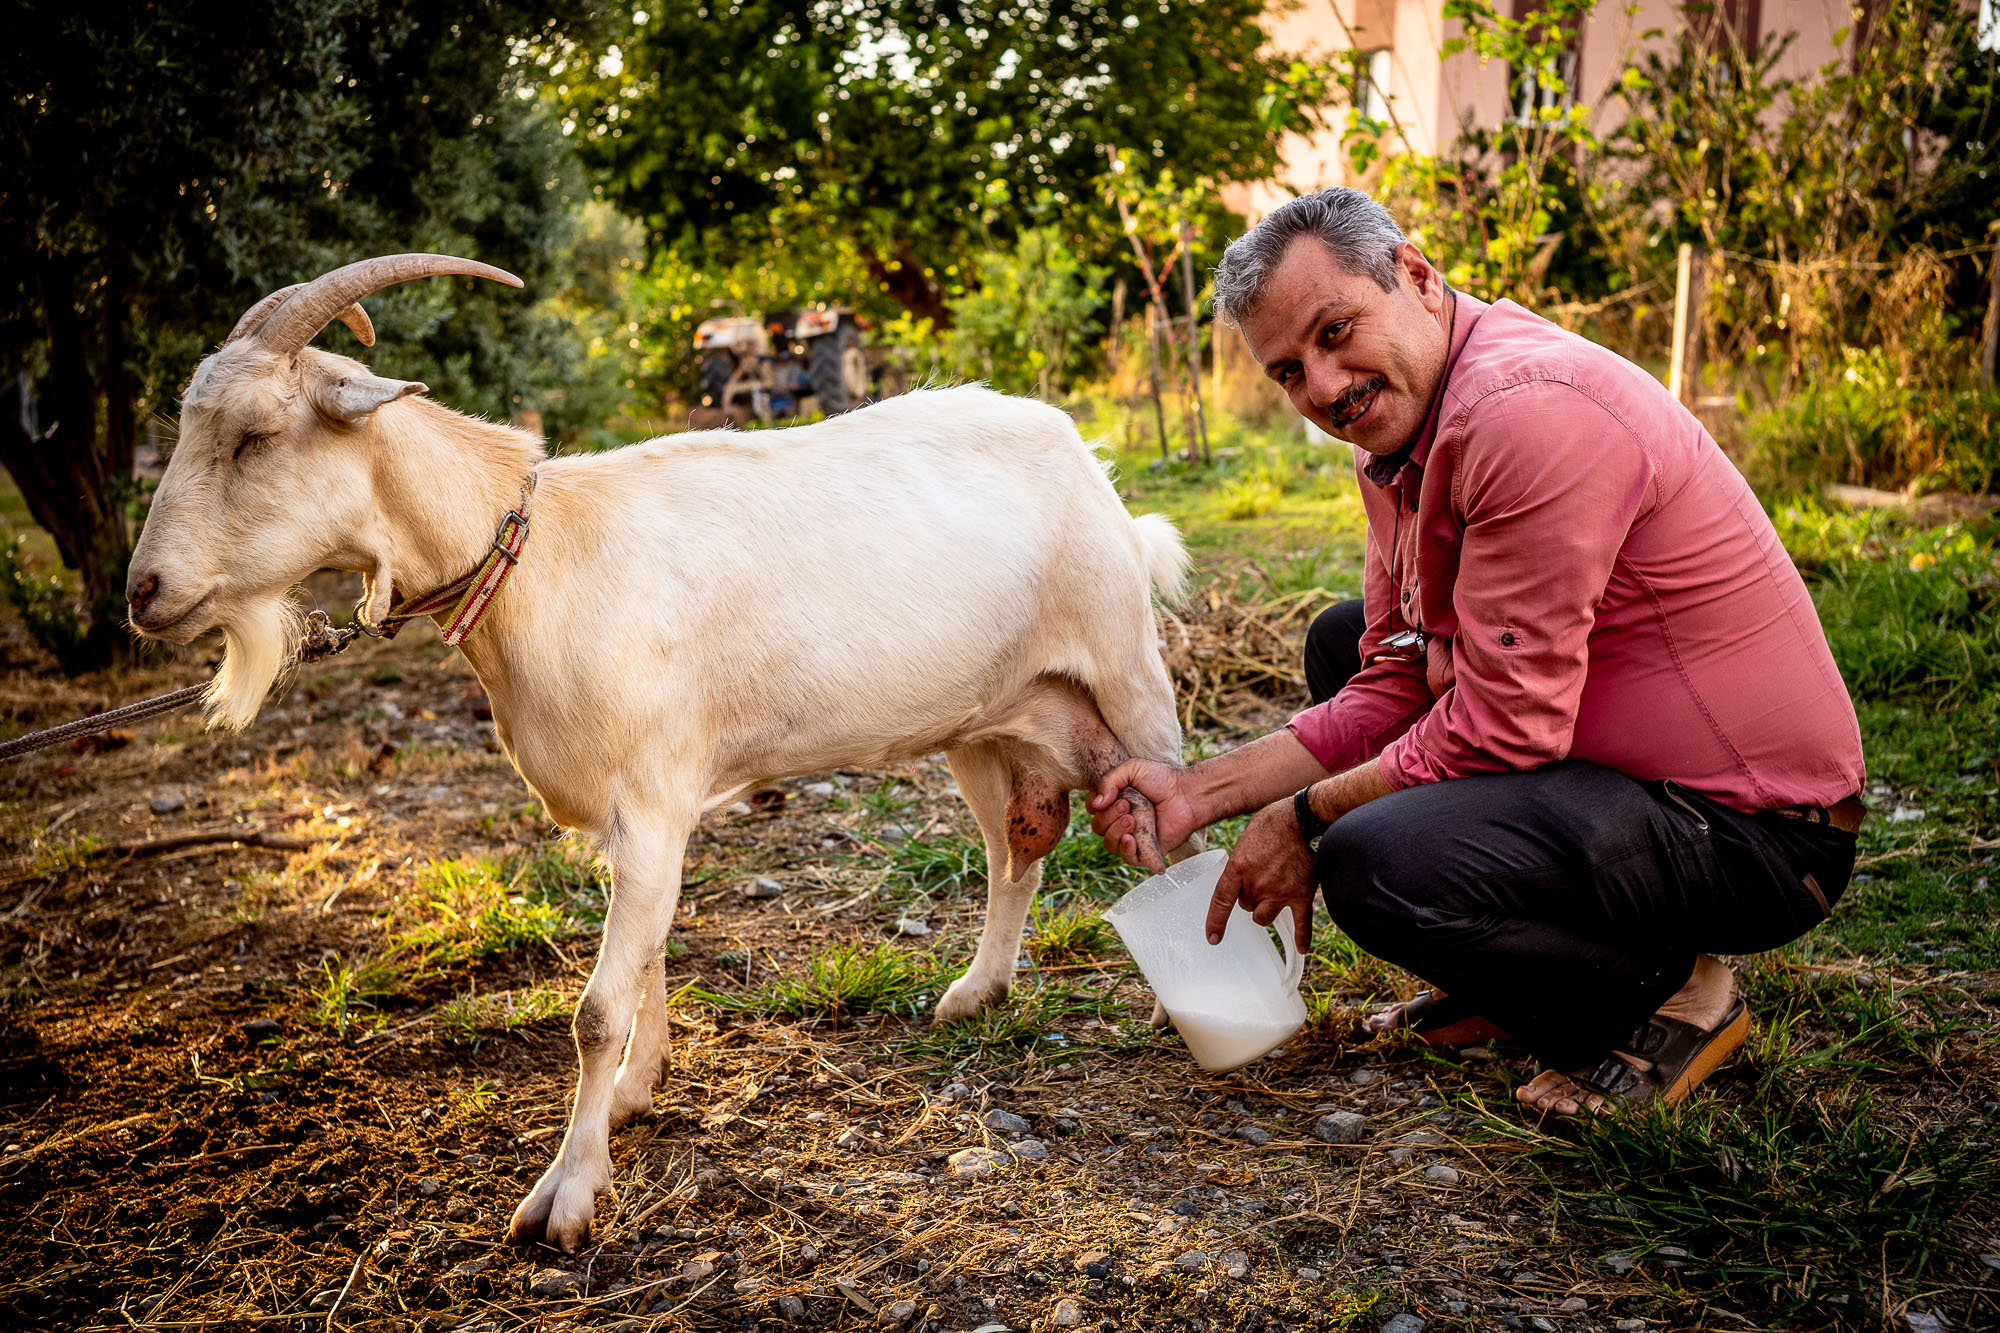 Uncle Hüseyin milking the goat